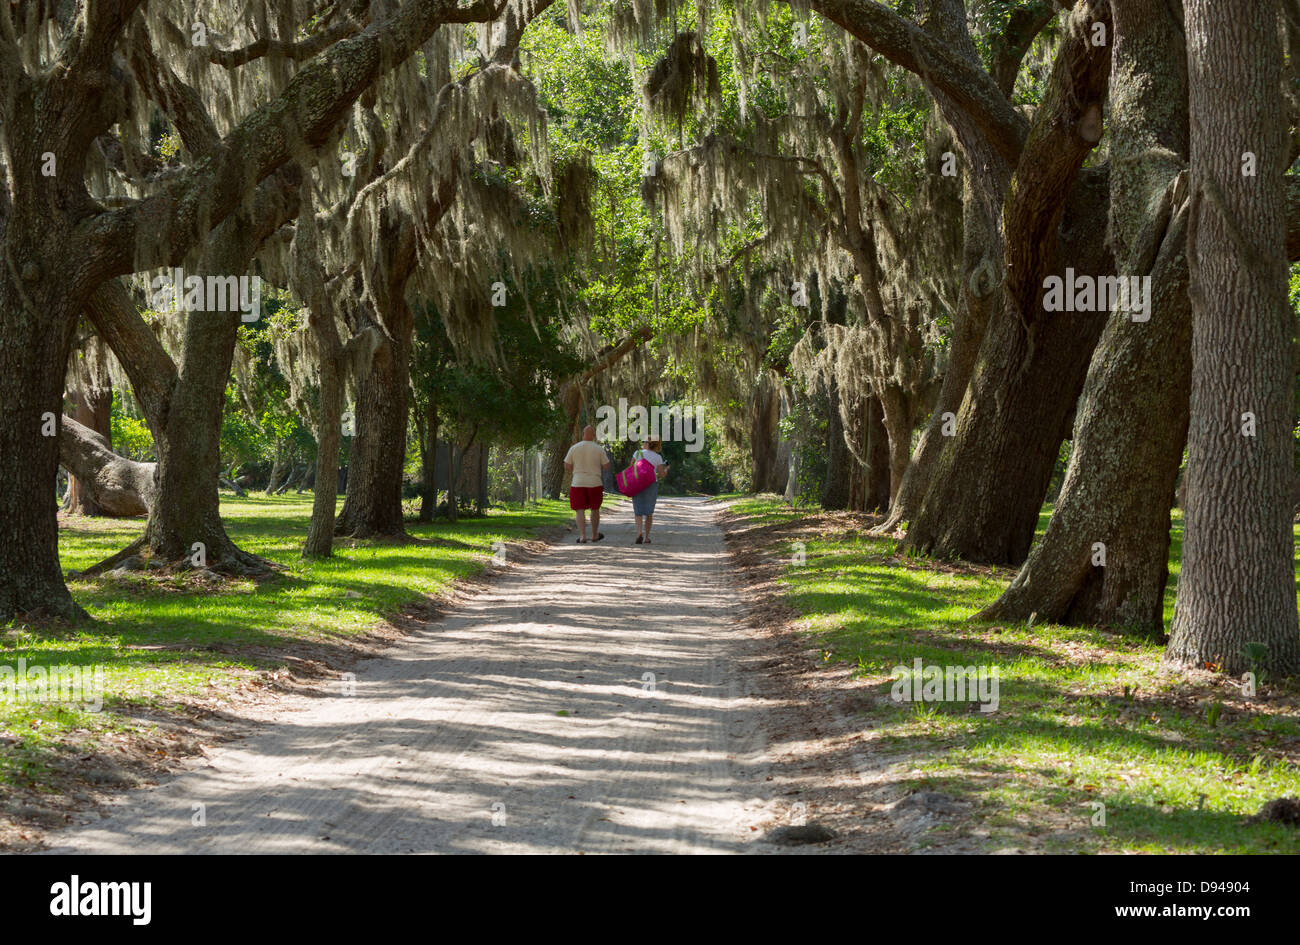 Spanish moss drapes live oaks lining the old plantation road at Dungeness, Cumberland Island, Georgia Stock Photo